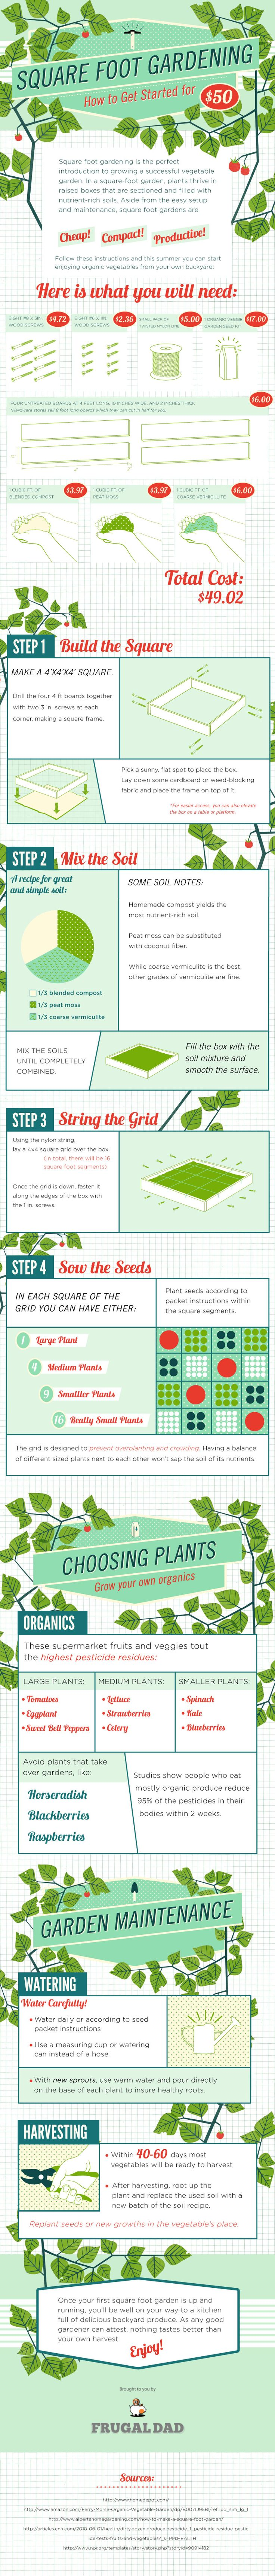 square foot gardenOn A Budget, Gardens Ideas, Green Thumb, Square Foot Gardening, Raised Beds, Squares Foot Gardens, Gardens Infographic, Growing Lights, Info Graphics